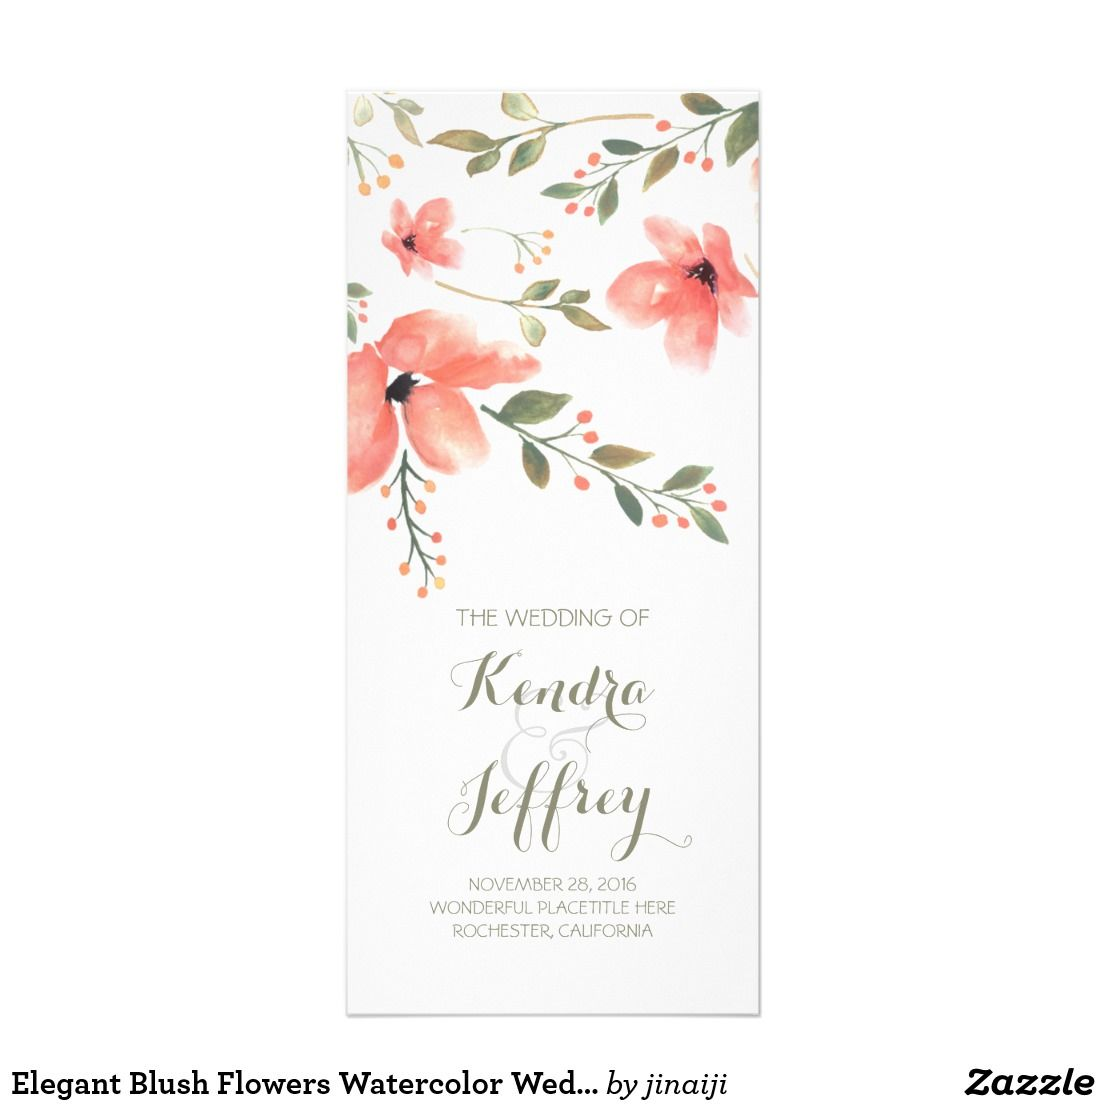 elegant blush flowers watercolor wedding programs floral watercolor